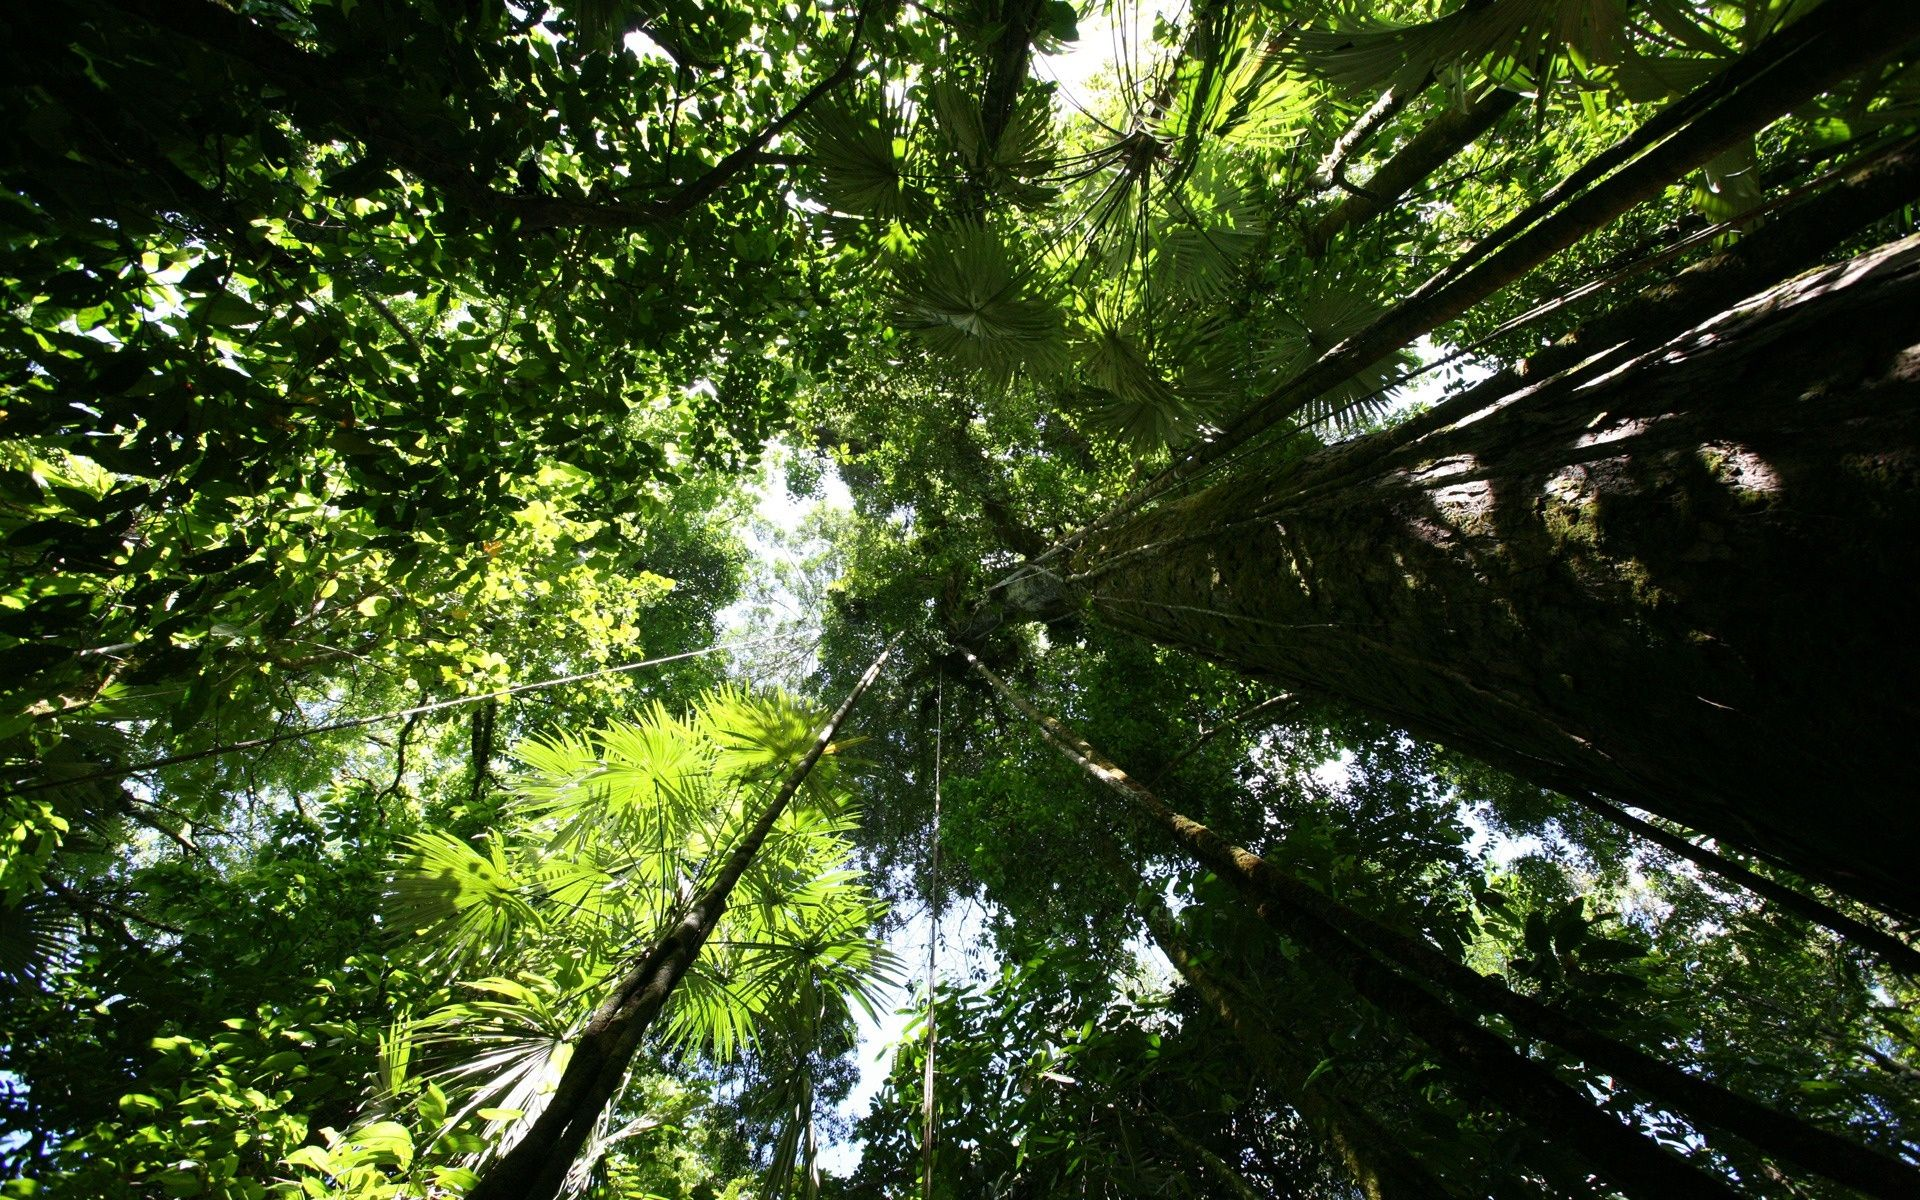 In the rainforest most plant and animal life is not found